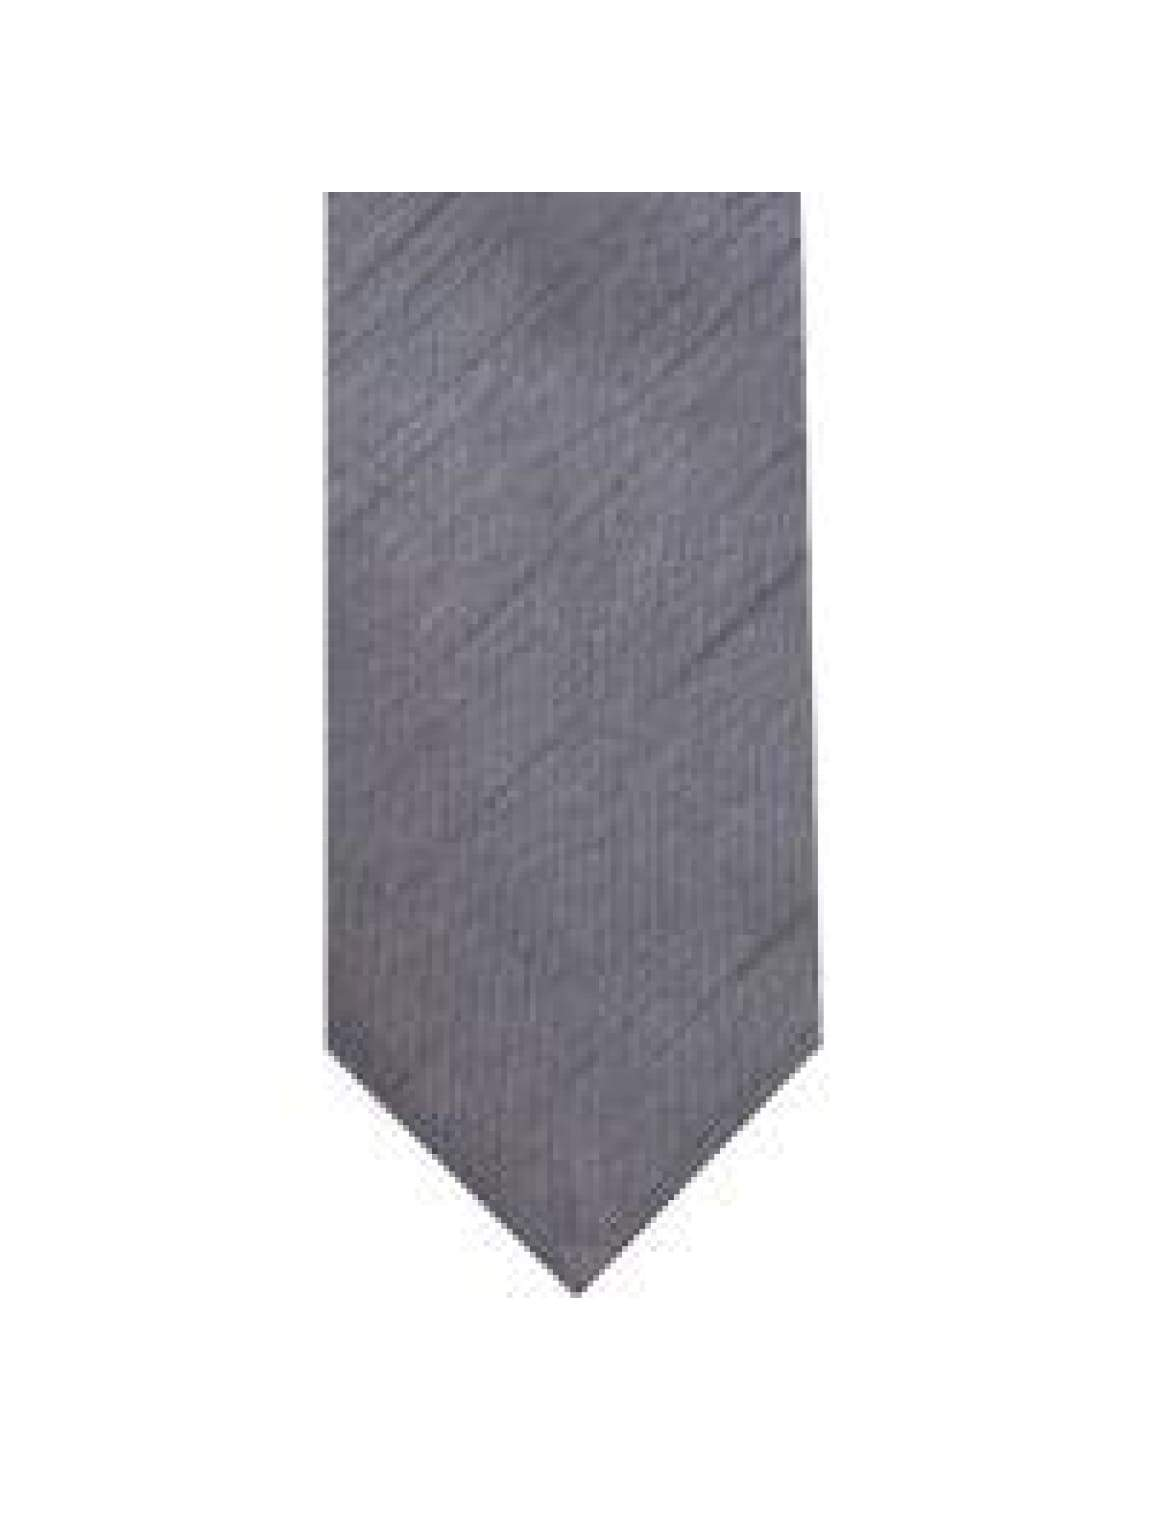 LA Smith Grey Skinny Shantung Tie - Accessories